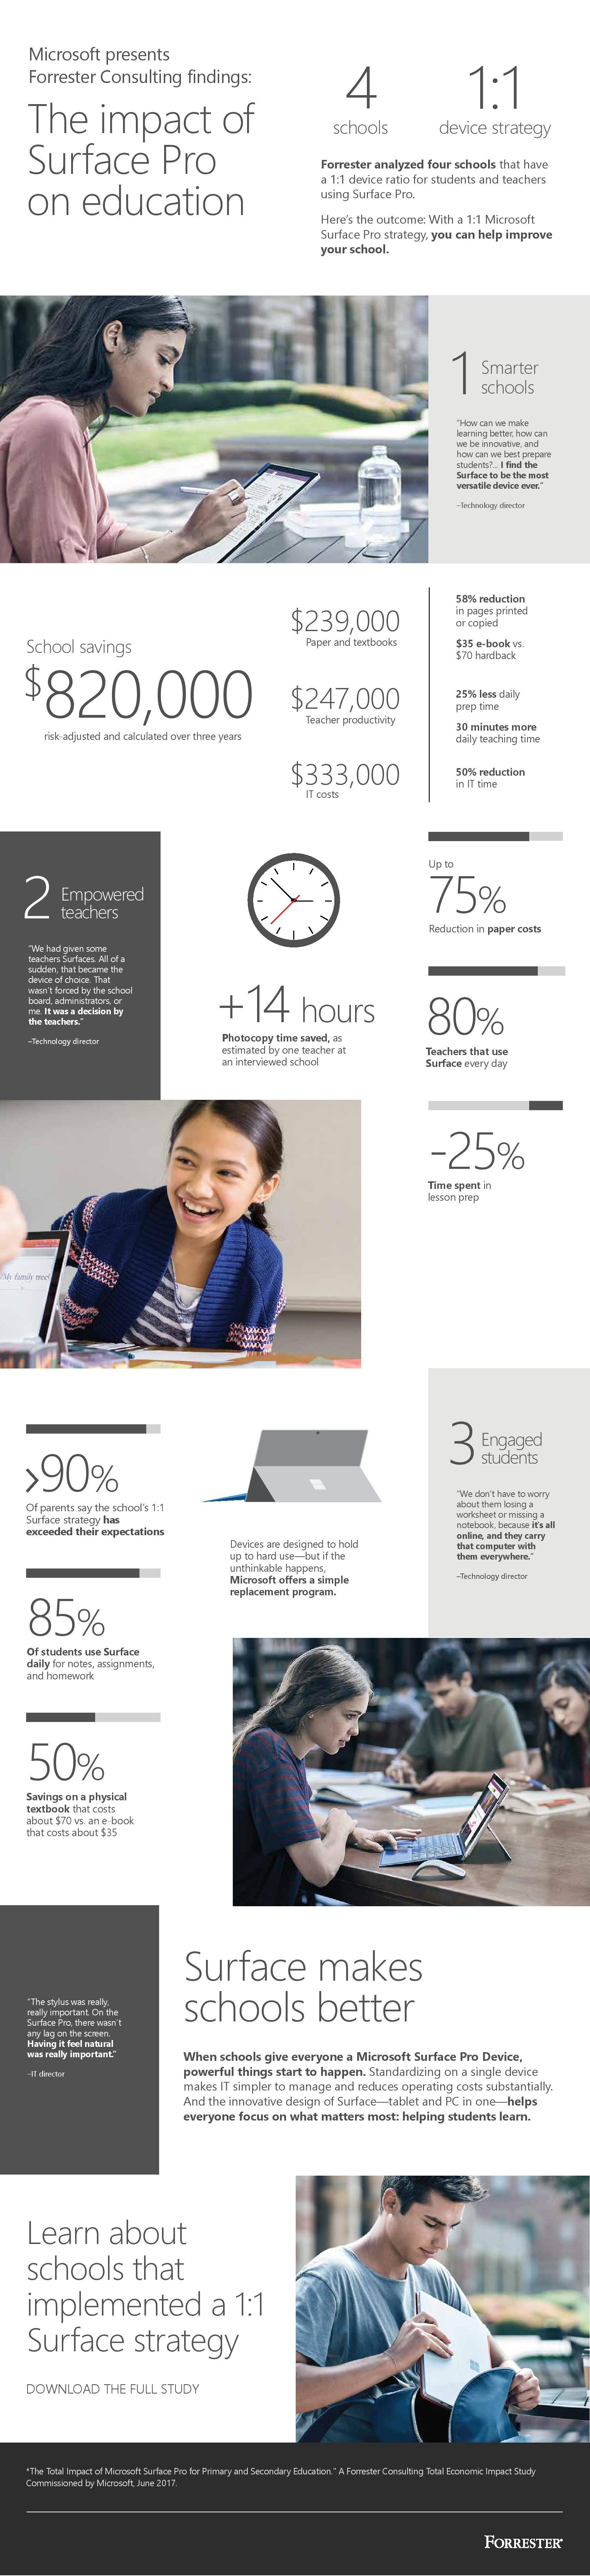 The Impact of Surface Pro on Education Infographic